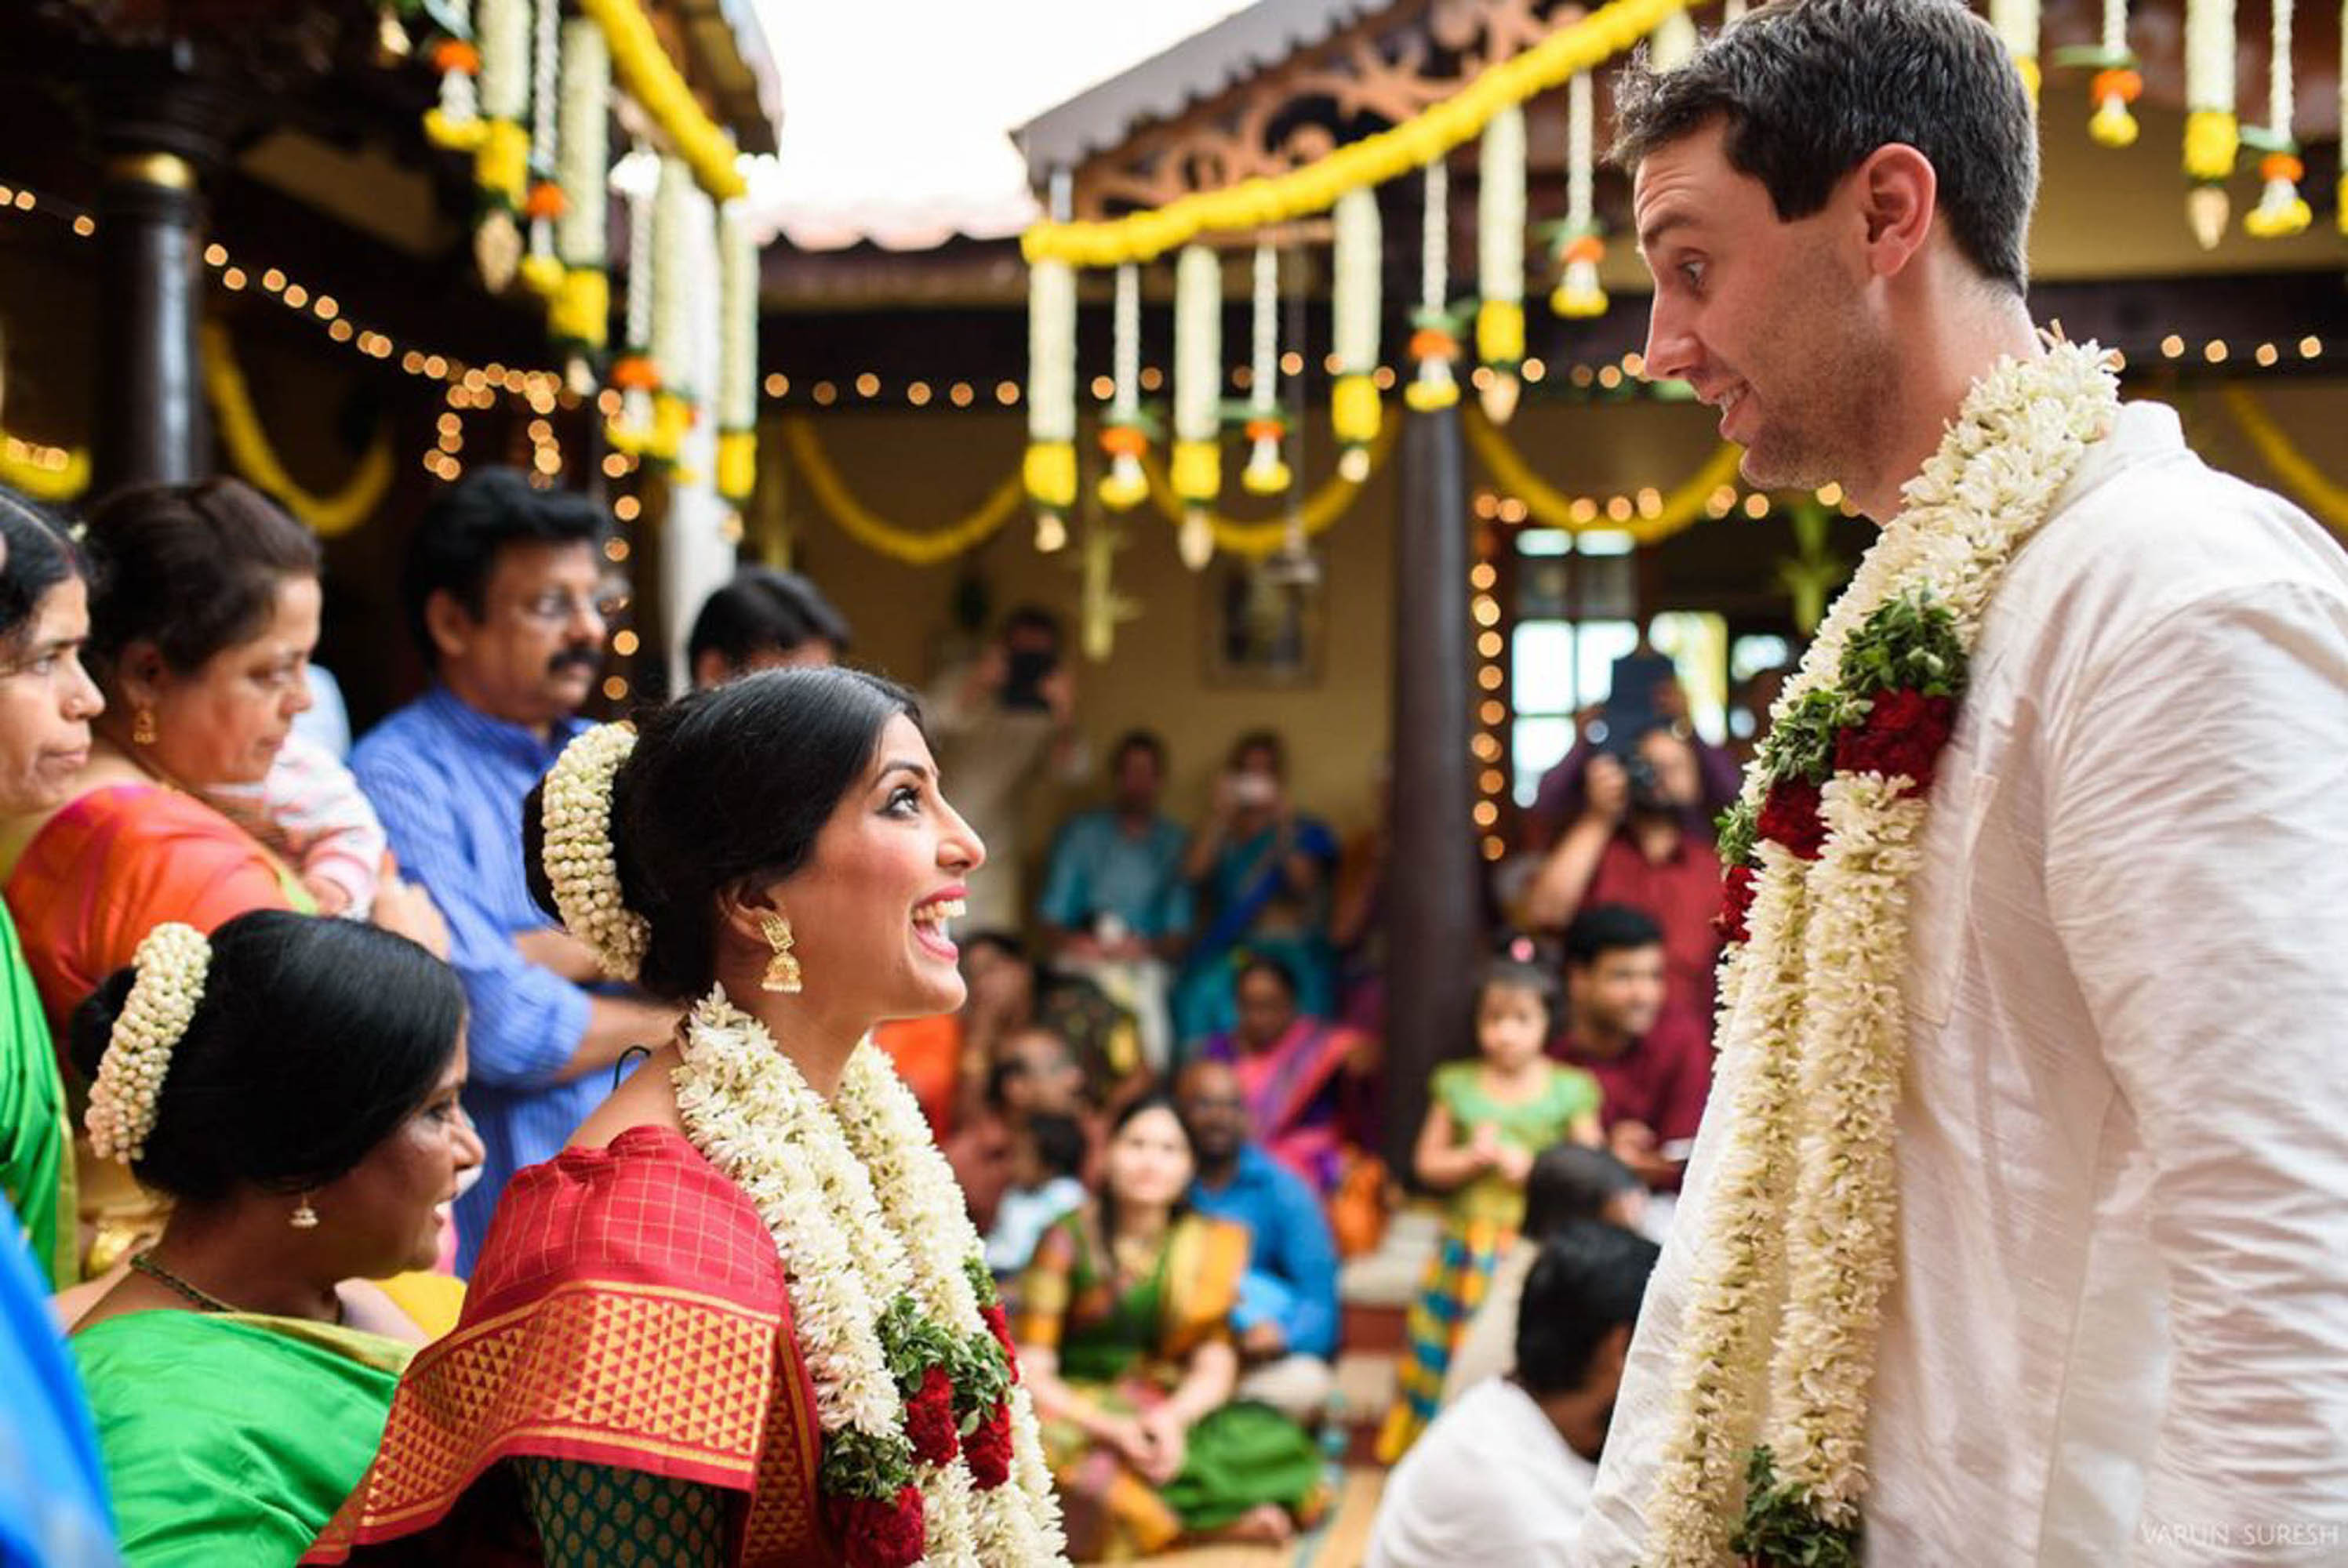 The 5 Step Guide To Planning A Modern Wedding - Roles & Responsibilities in Indian Wedding Planning - The Maharani Diaries